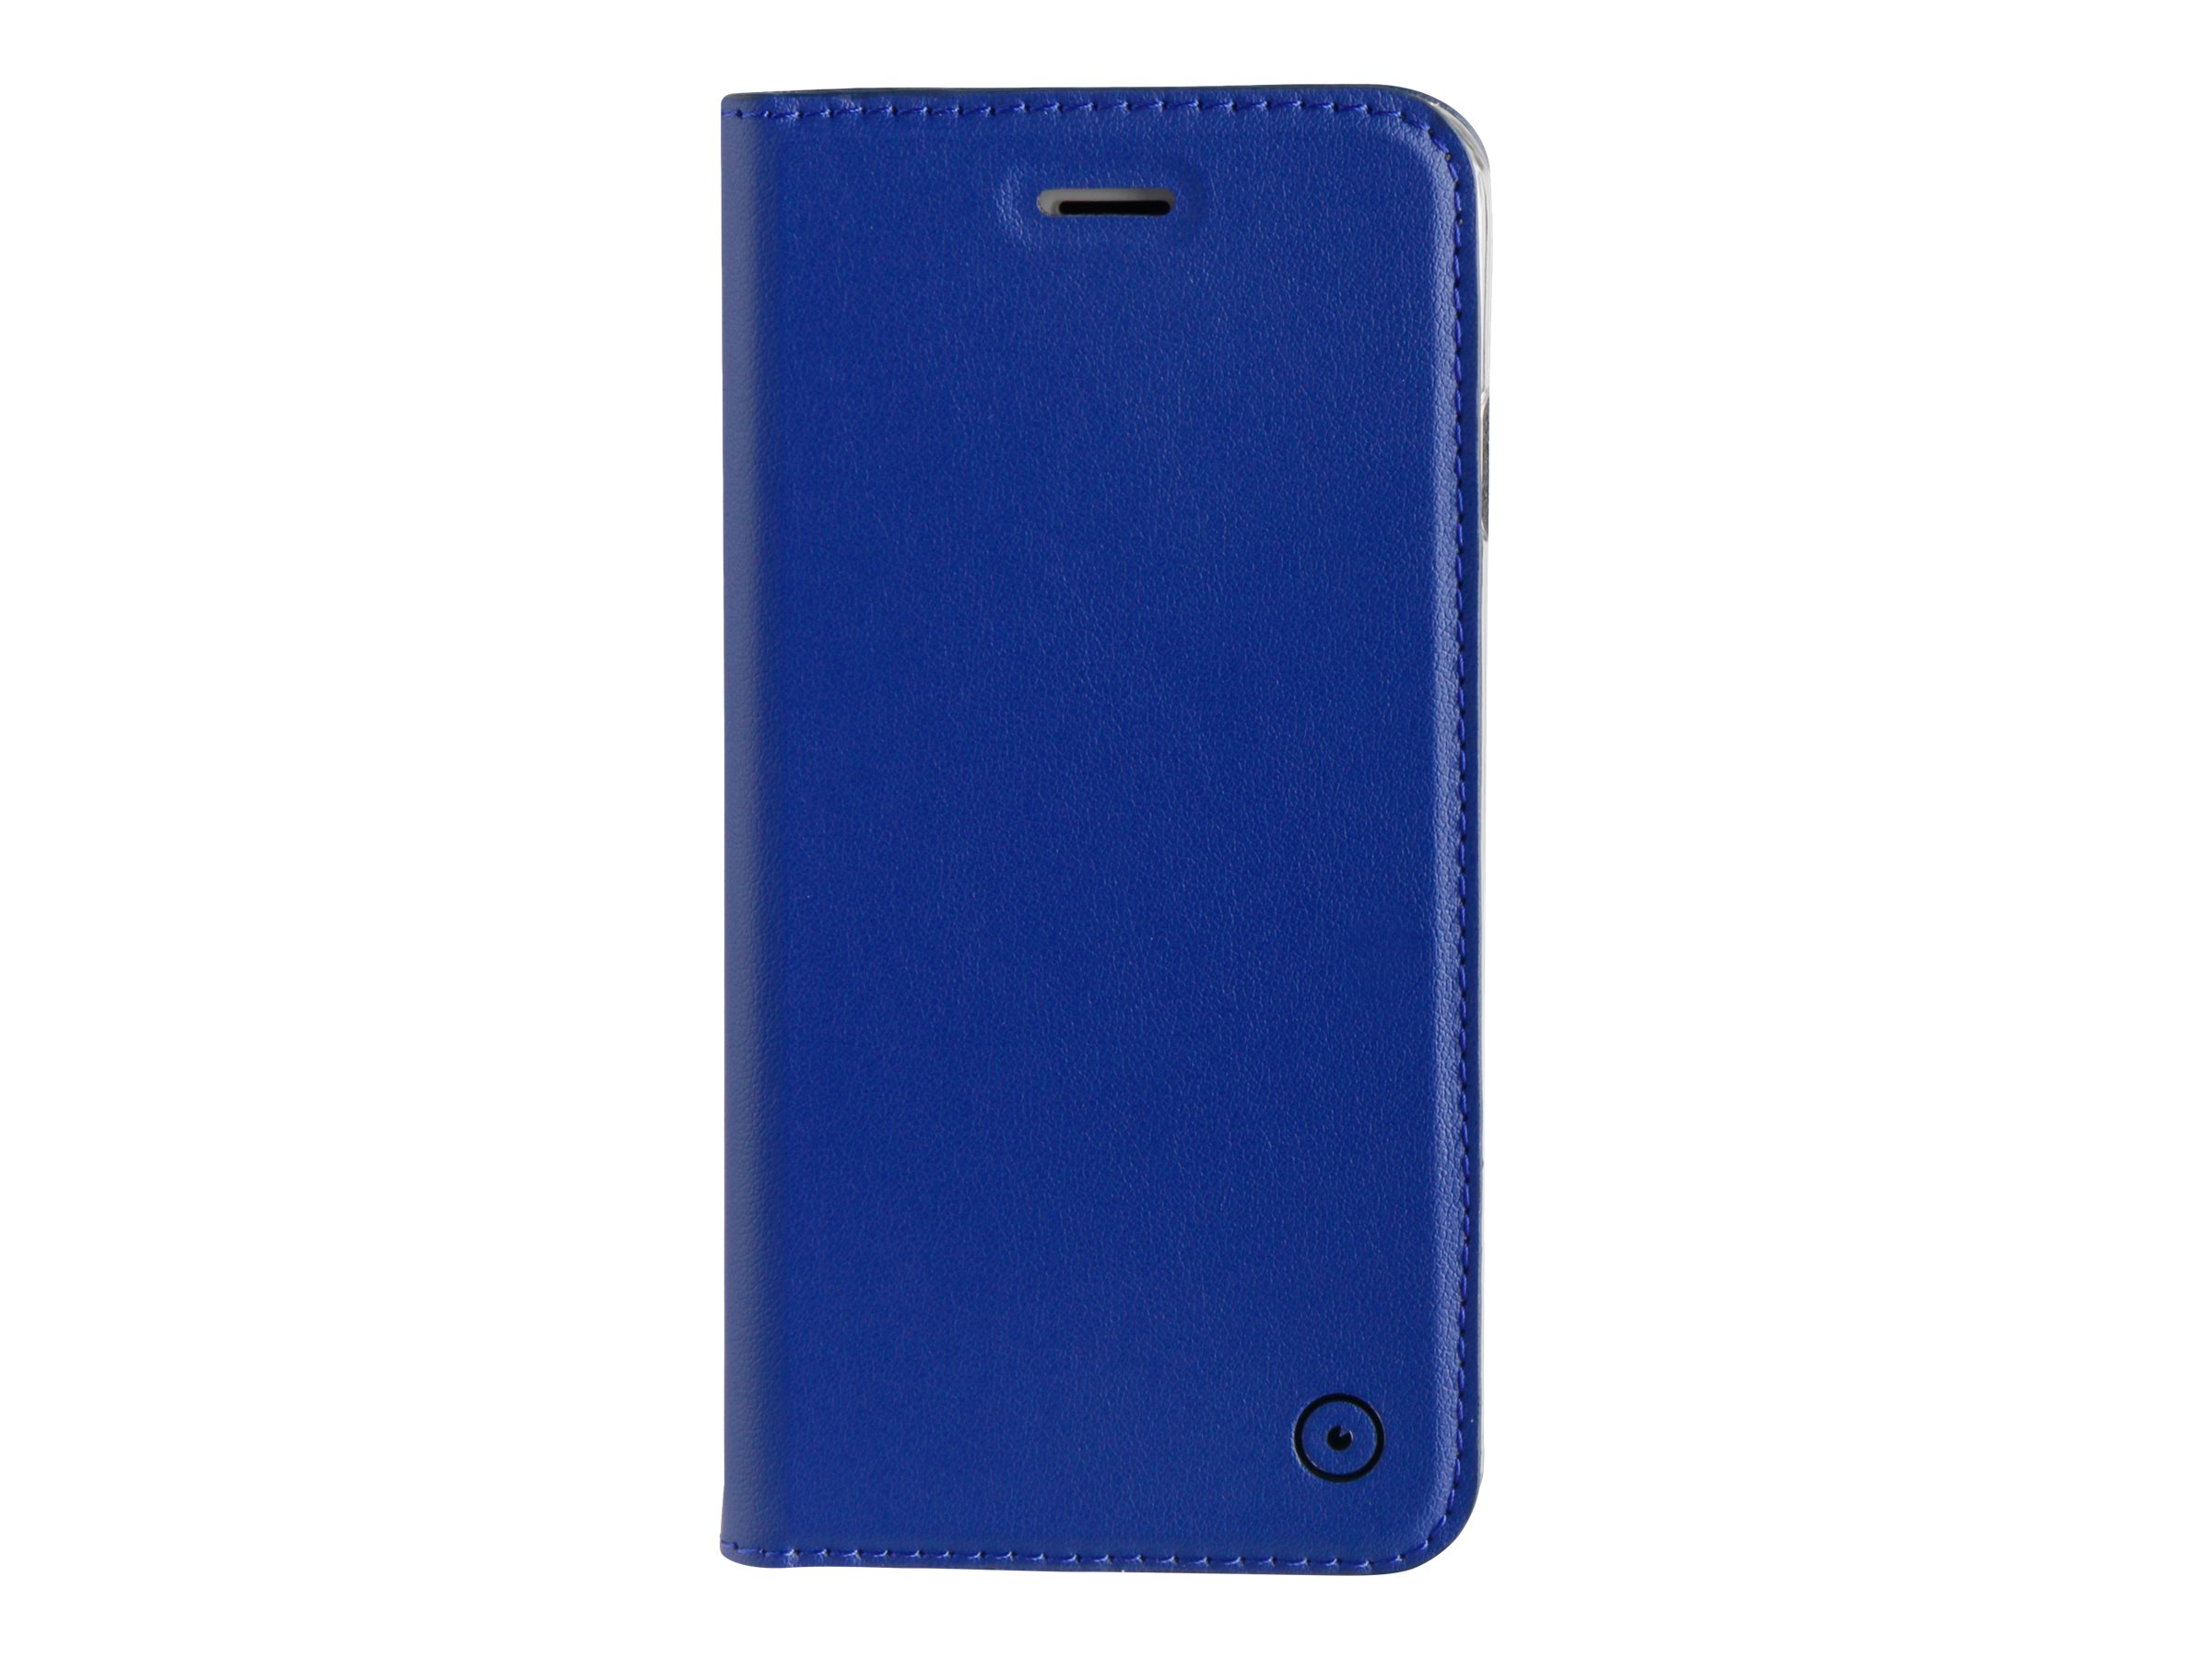 Muvit Folio Stand - Protection à rabat pour iPhone 7 - bleu